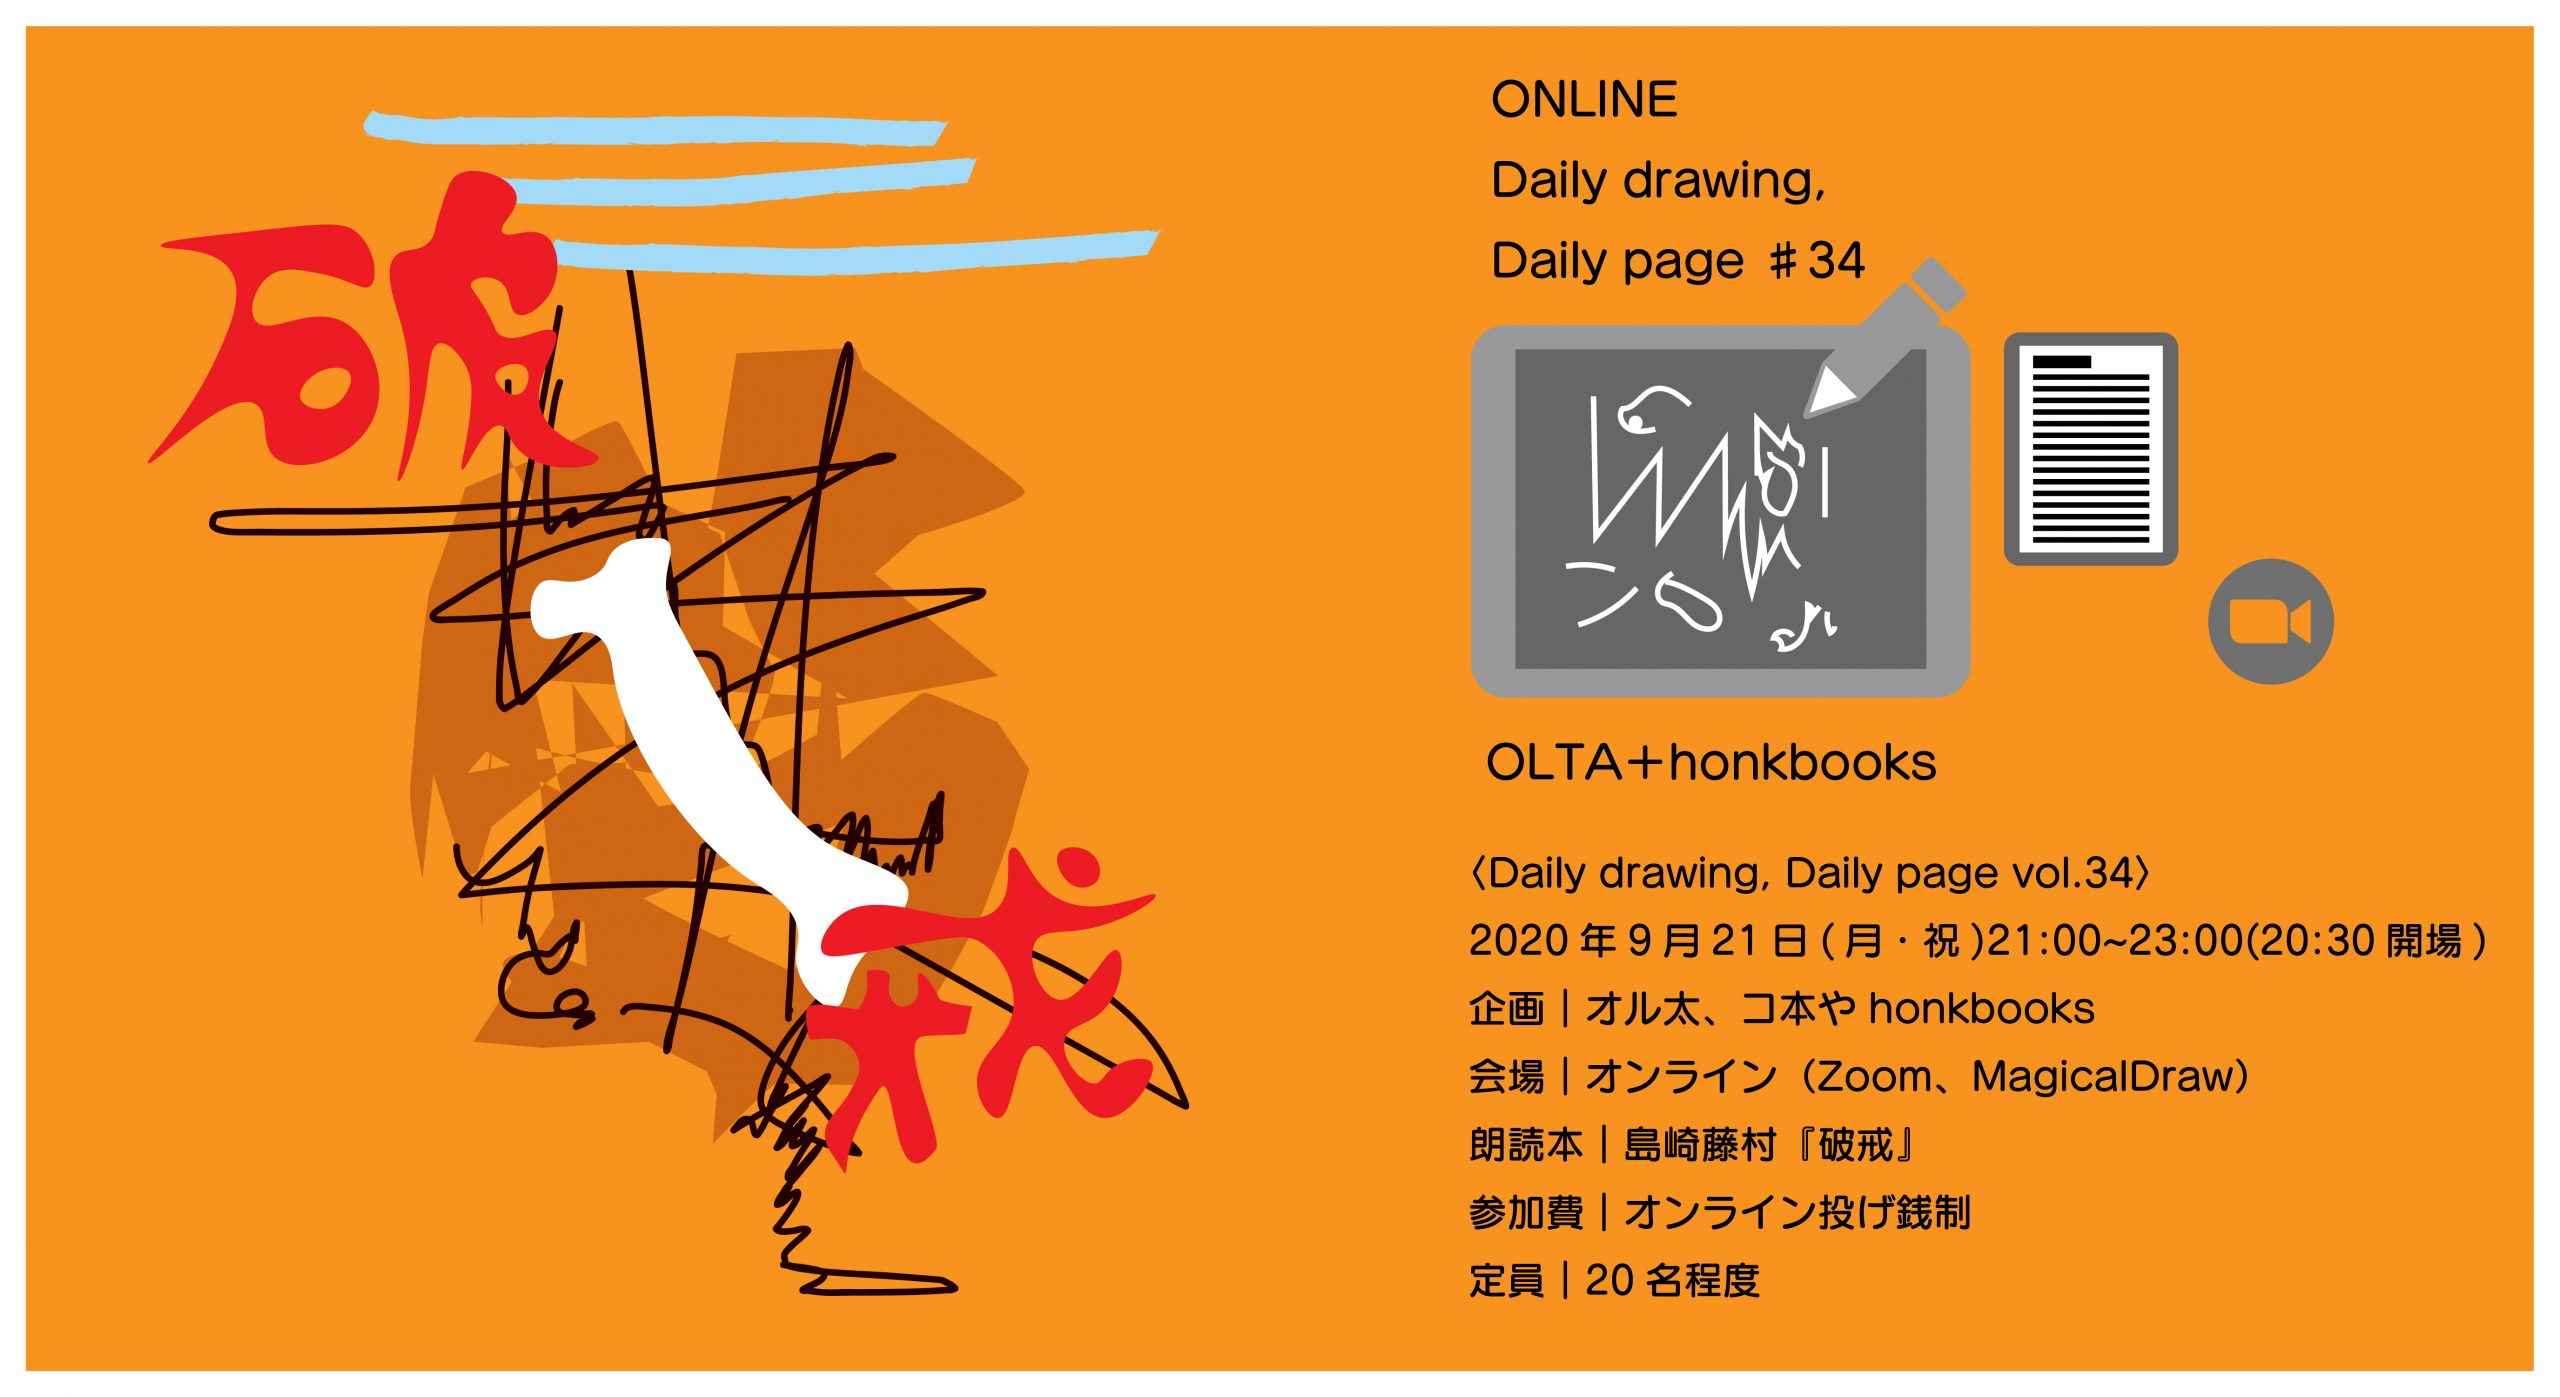 [ONLINE]オル太+コ本や共同企画〈Daily drawing, Daily page vol.34〉「破戒」